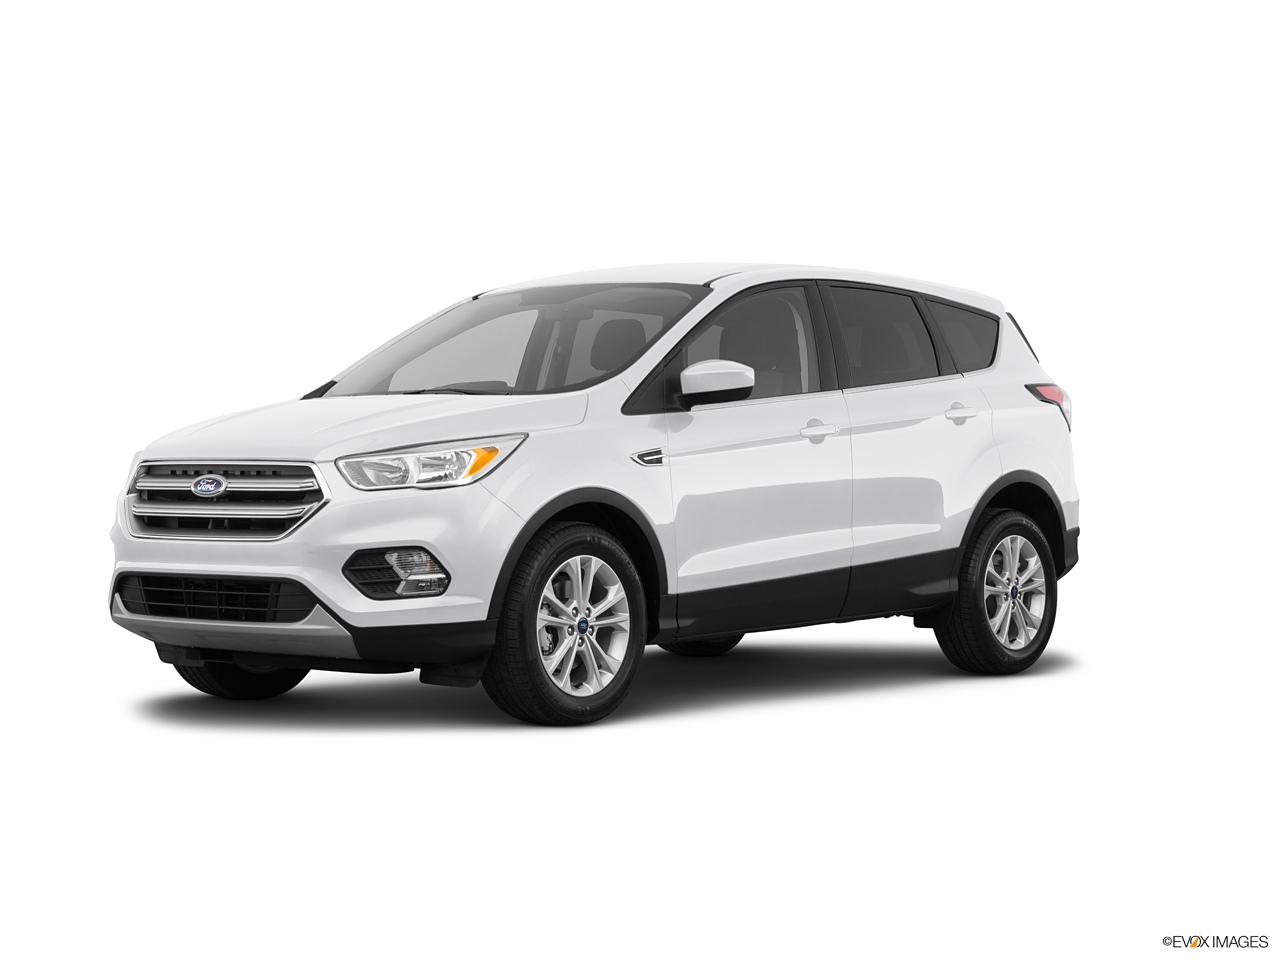 Image Result For Ford Kuga Qatar